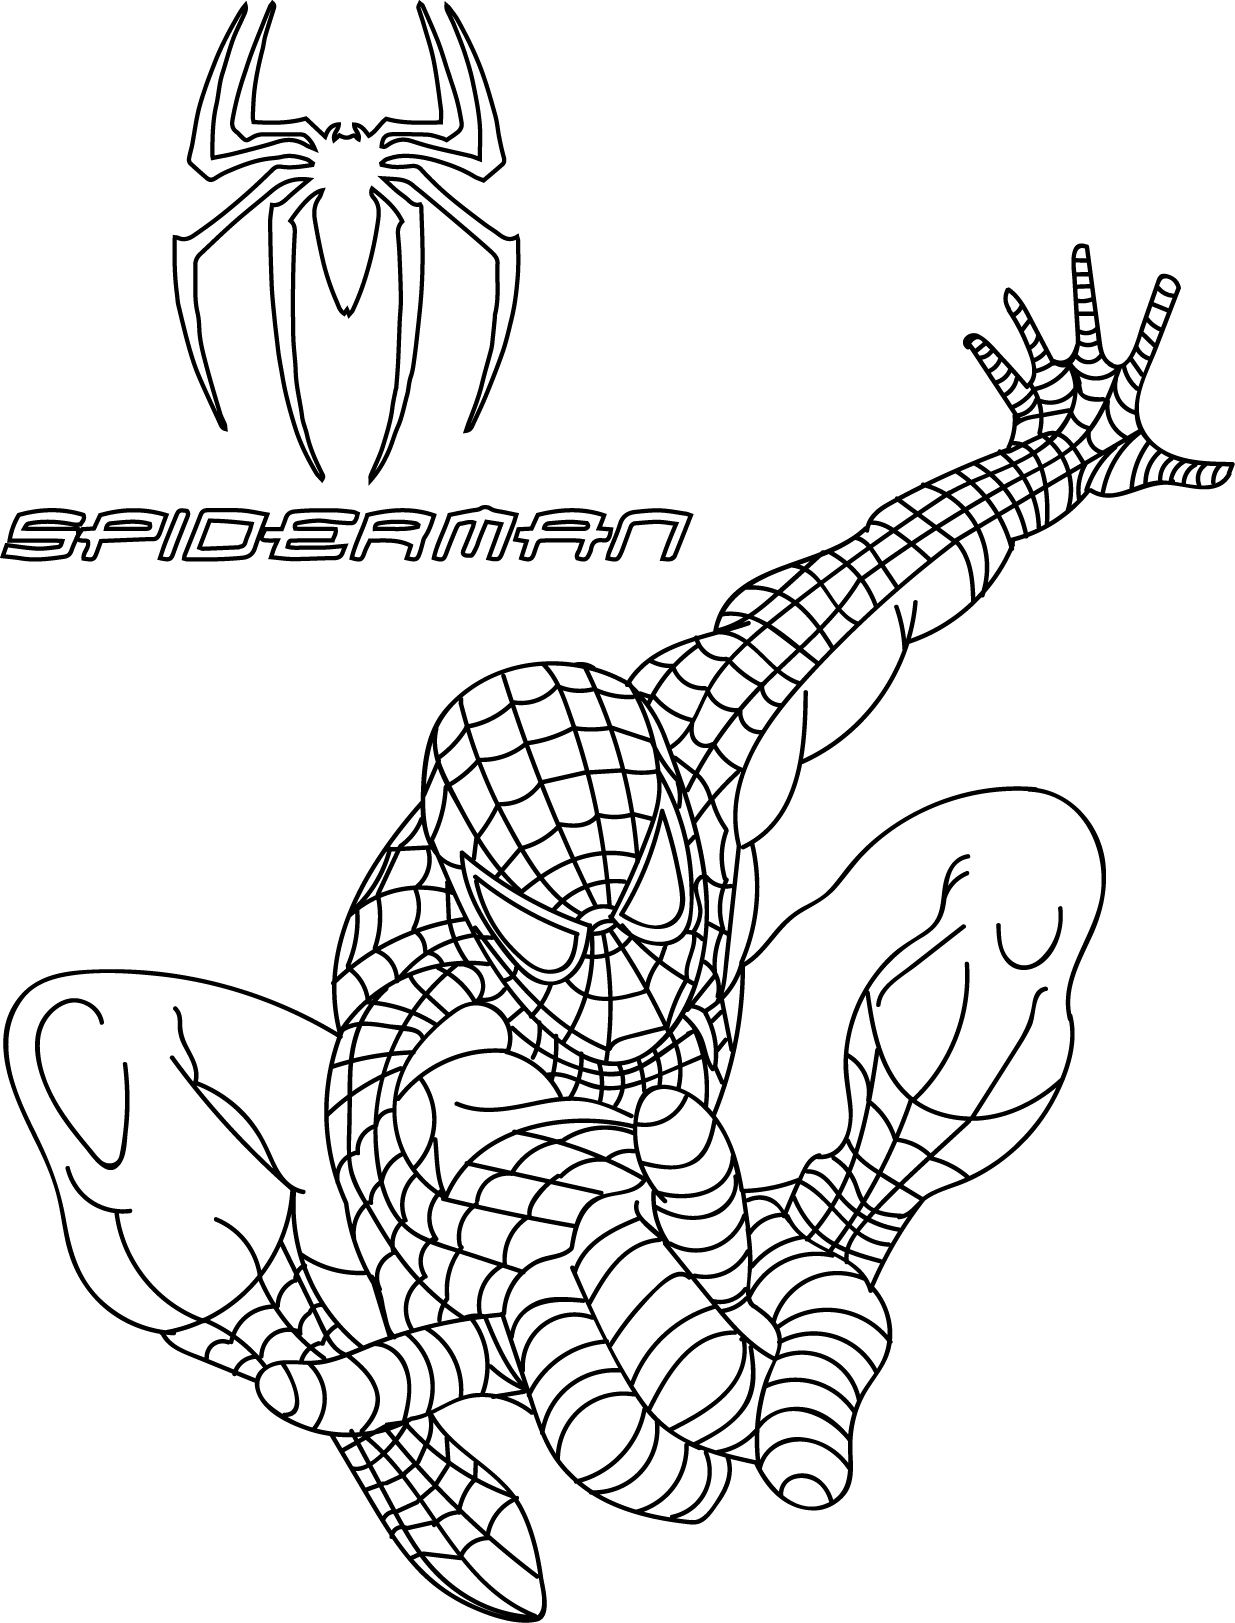 Spider Man Catch Coloring Page | 2 B Sorted | Pinterest ...